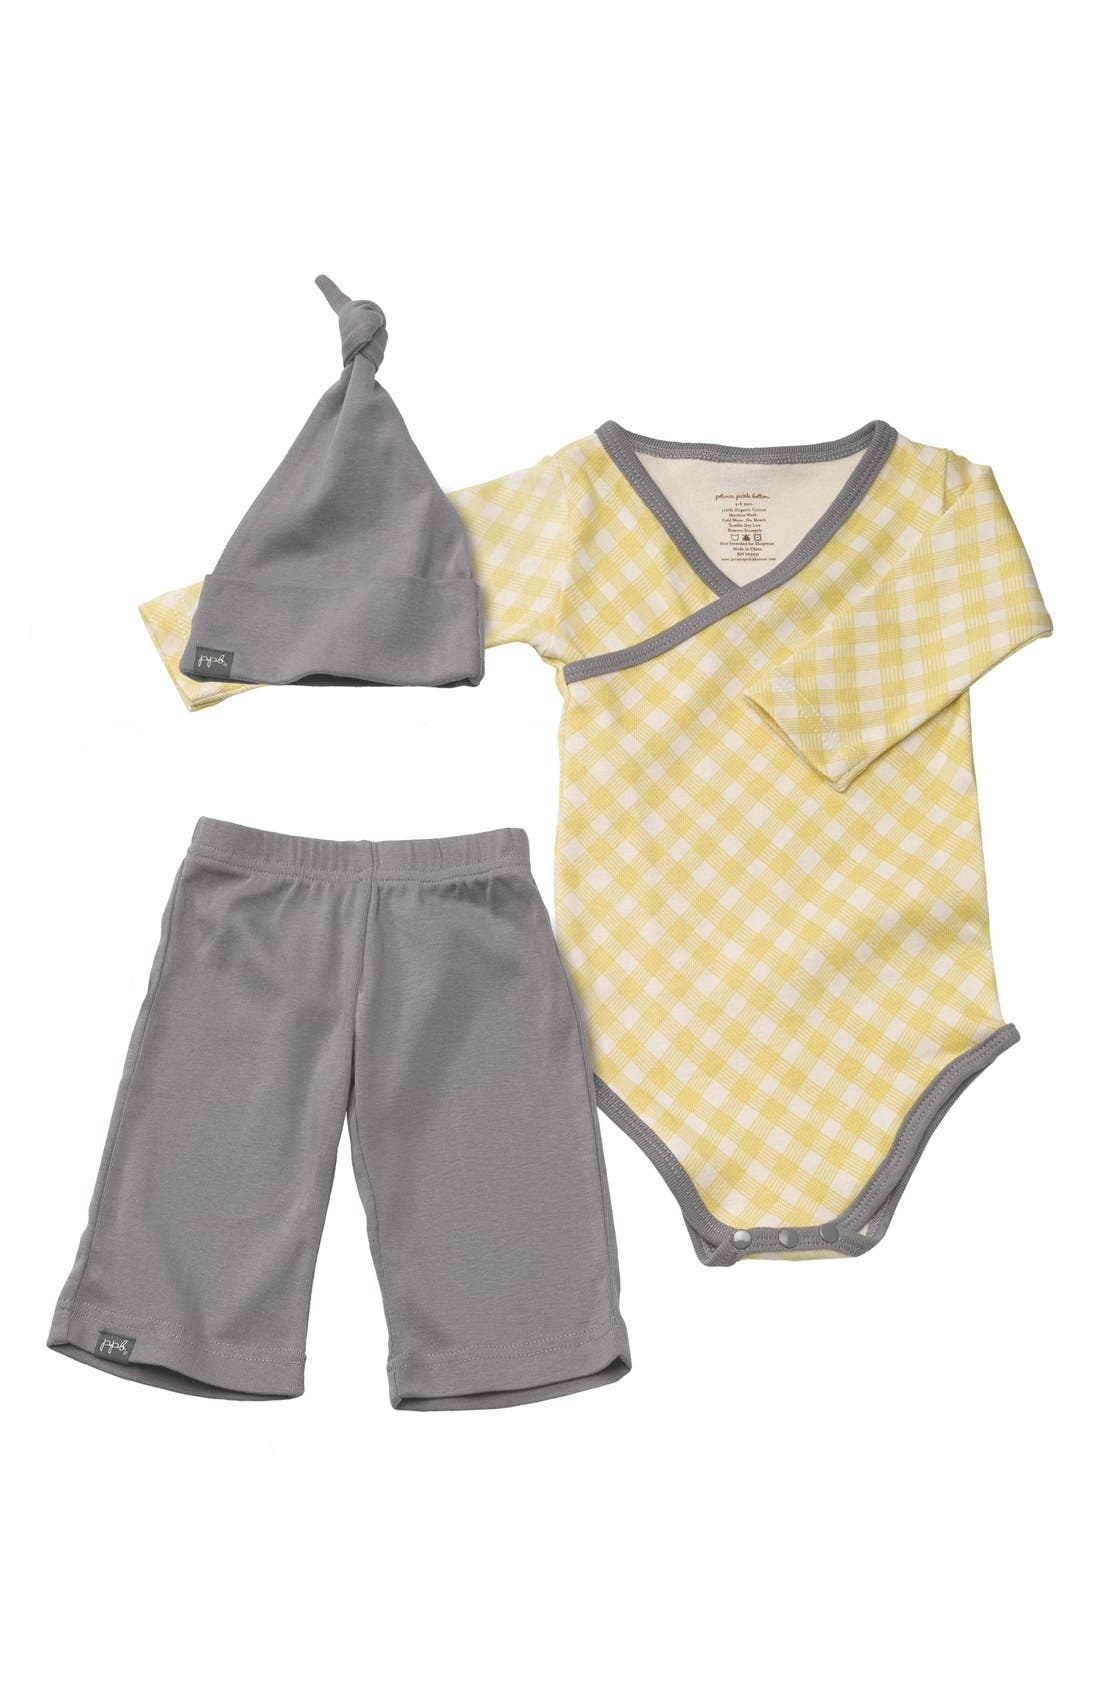 Main Image - Petunia Pickle Bottom 'Social' Organic Cotton Bodysuit, Pants & Hat Set (Baby)